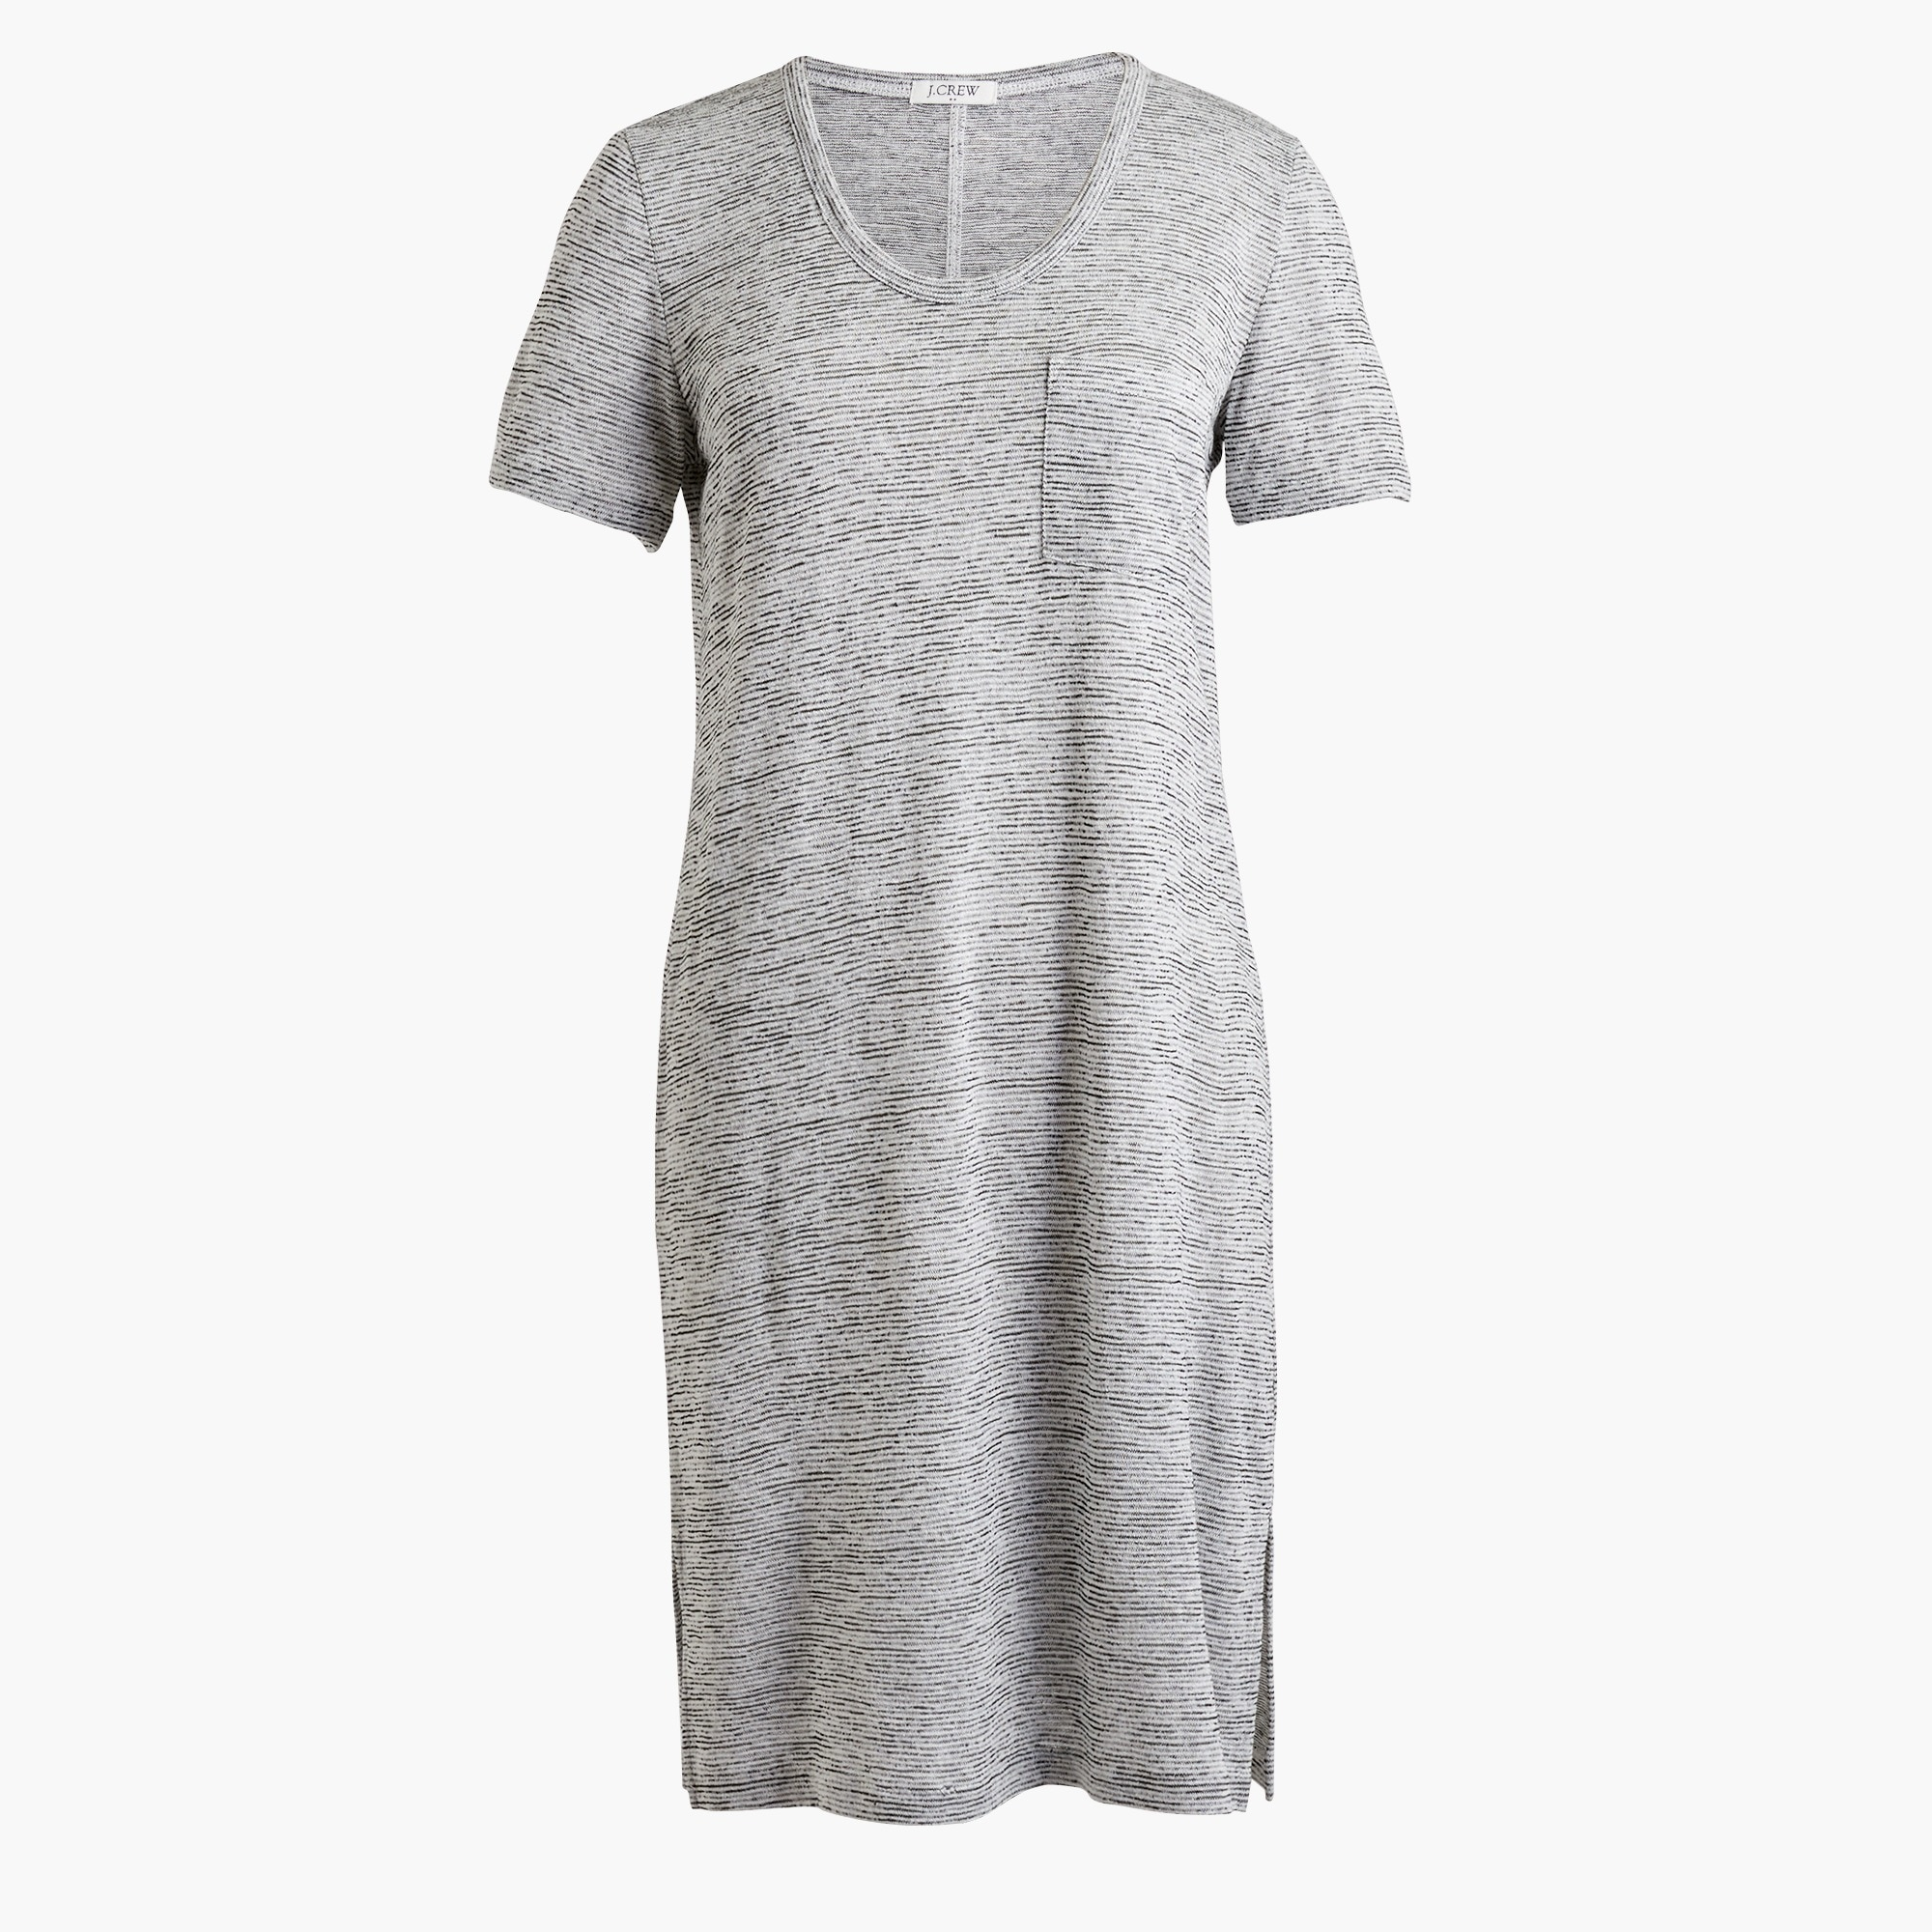 Image 2 for Short-sleeve pocket T-shirt dress